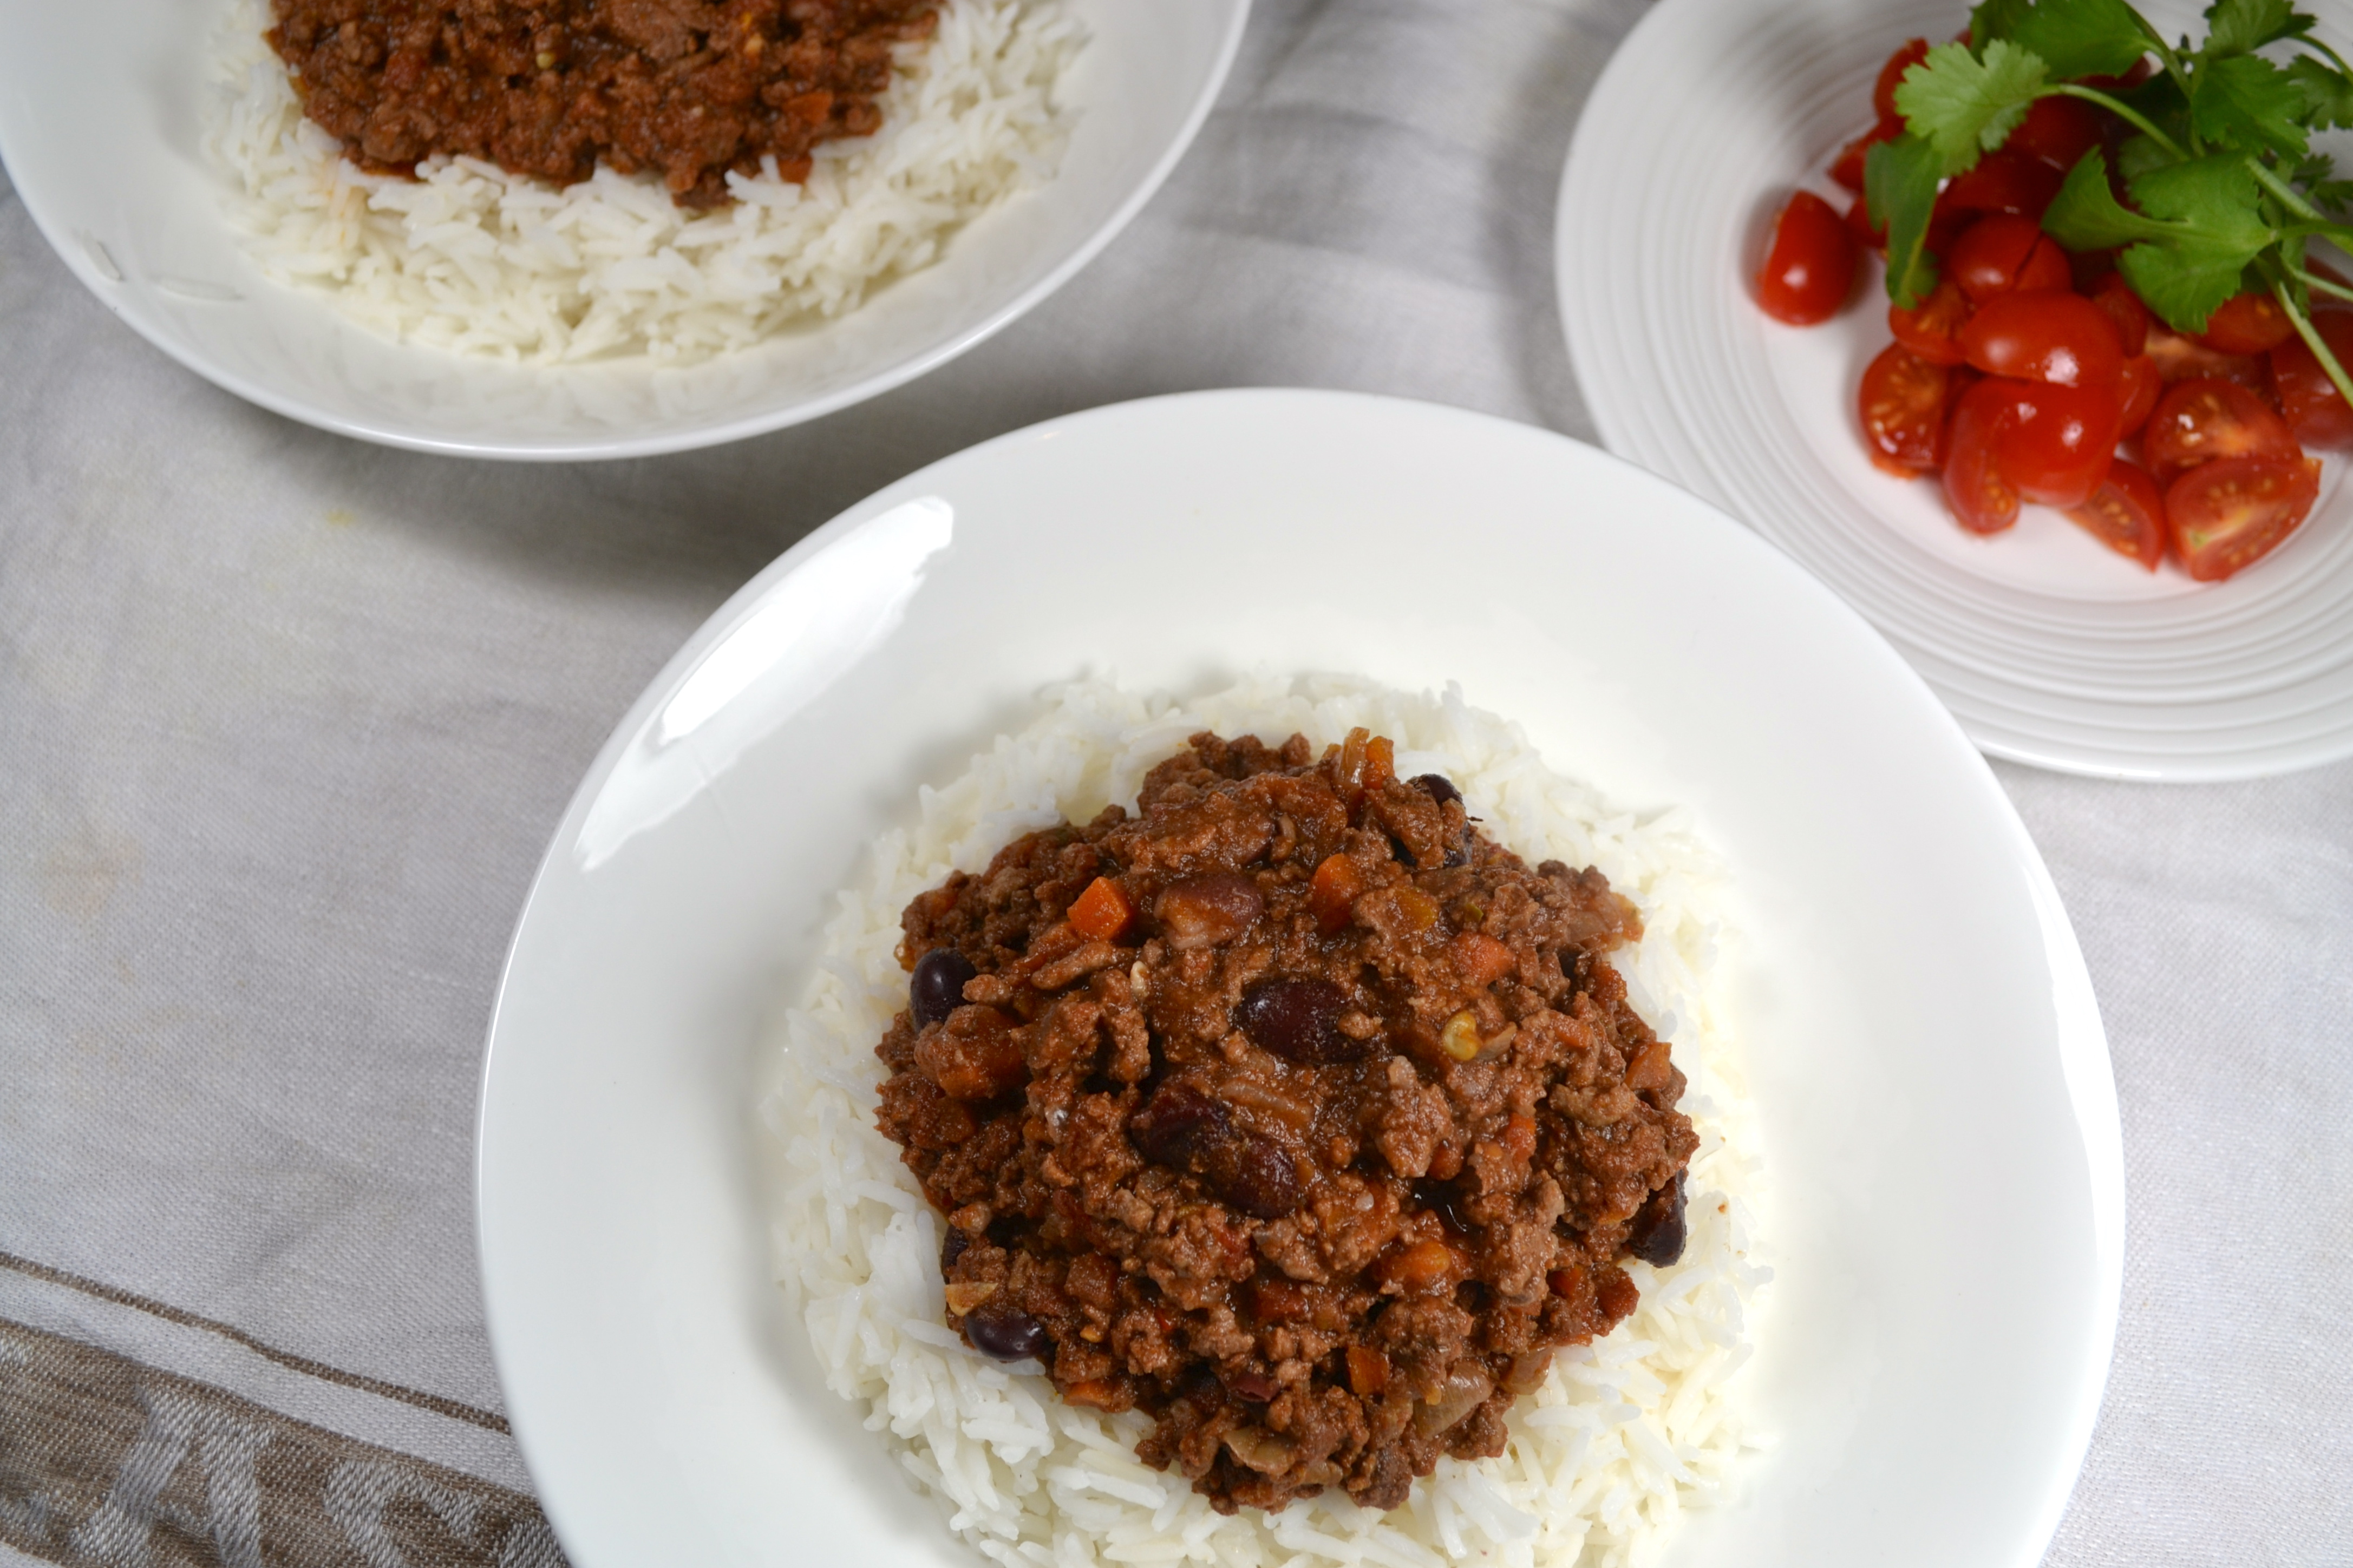 Chilli Con Carne | The Perky Pancake